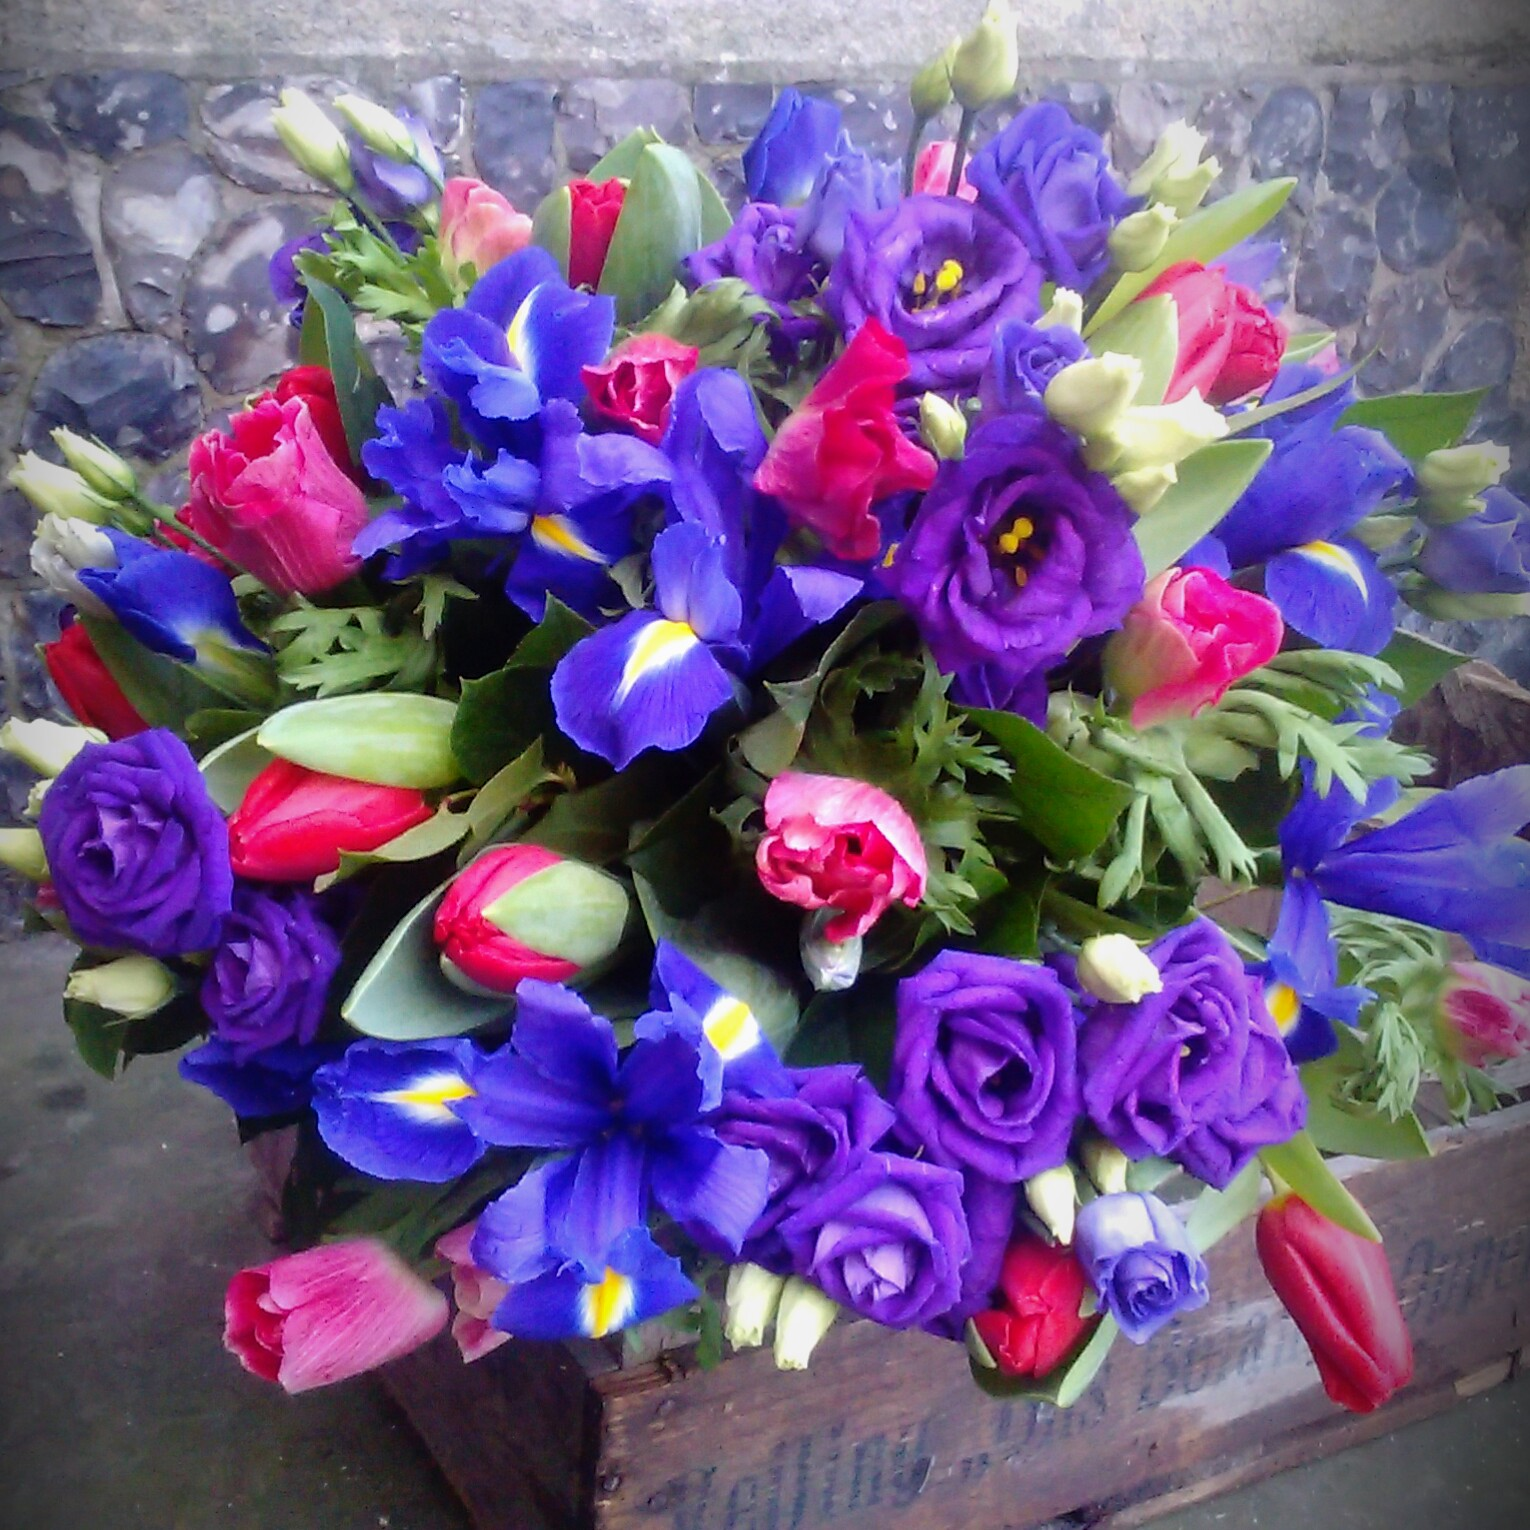 The Flower Stand Specialising In Flowers Brighton Funeral